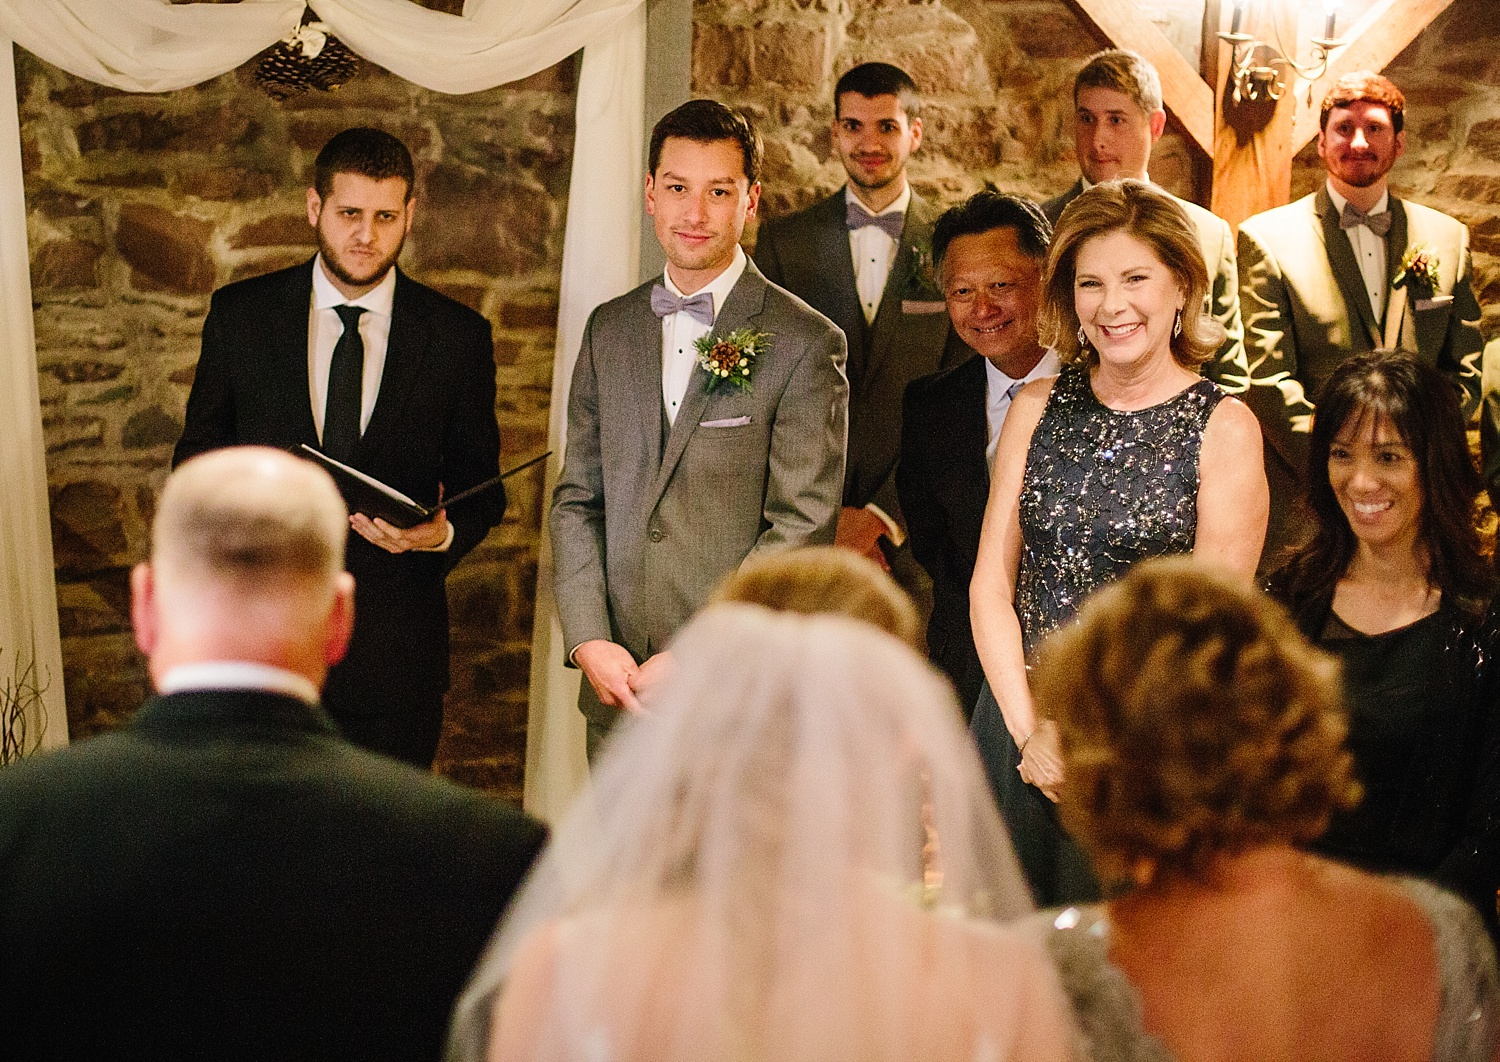 jessdavid_barnonbridge_phoenixville_winter_wedding_image_066.jpg